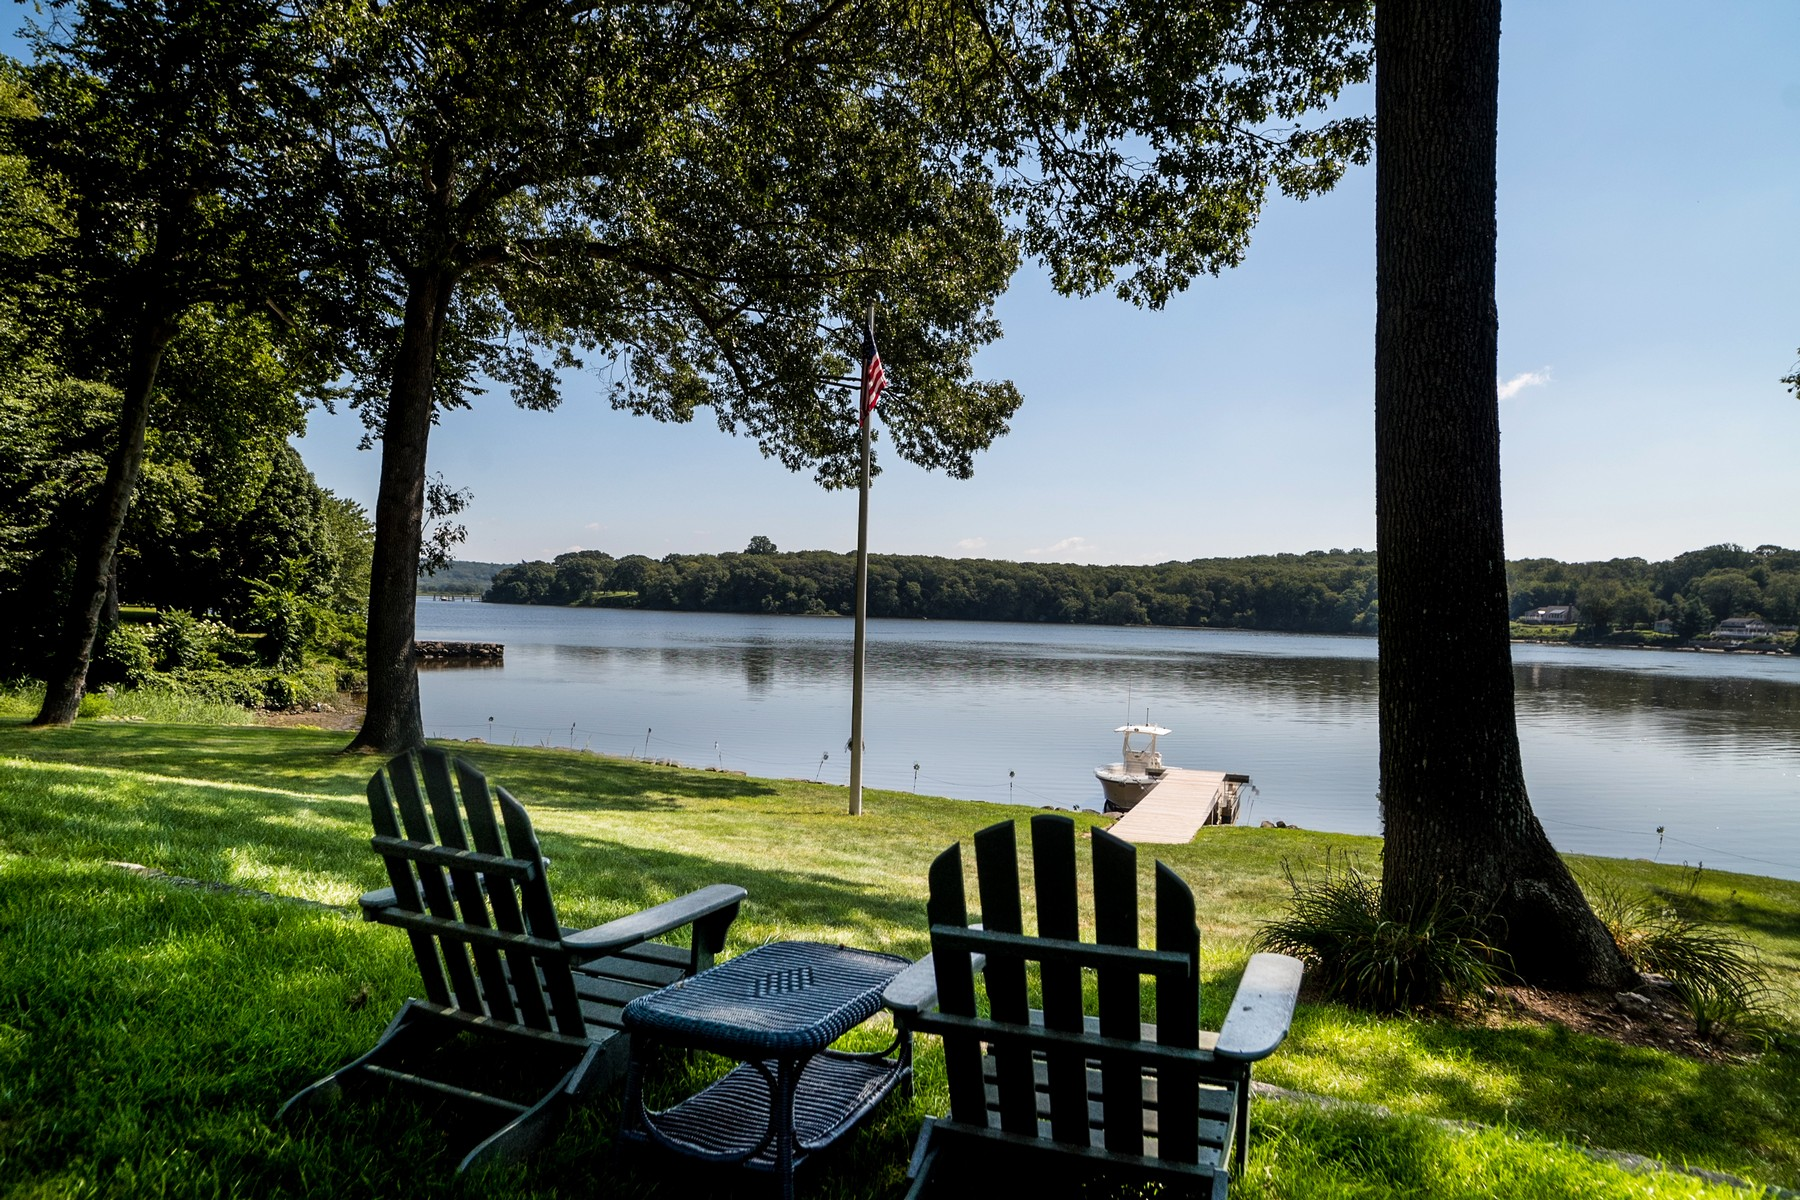 Single Family Homes for Sale at A Very Special Waterfront Property Awaits You! 28 Mallard Point Road Essex, Connecticut 06426 United States